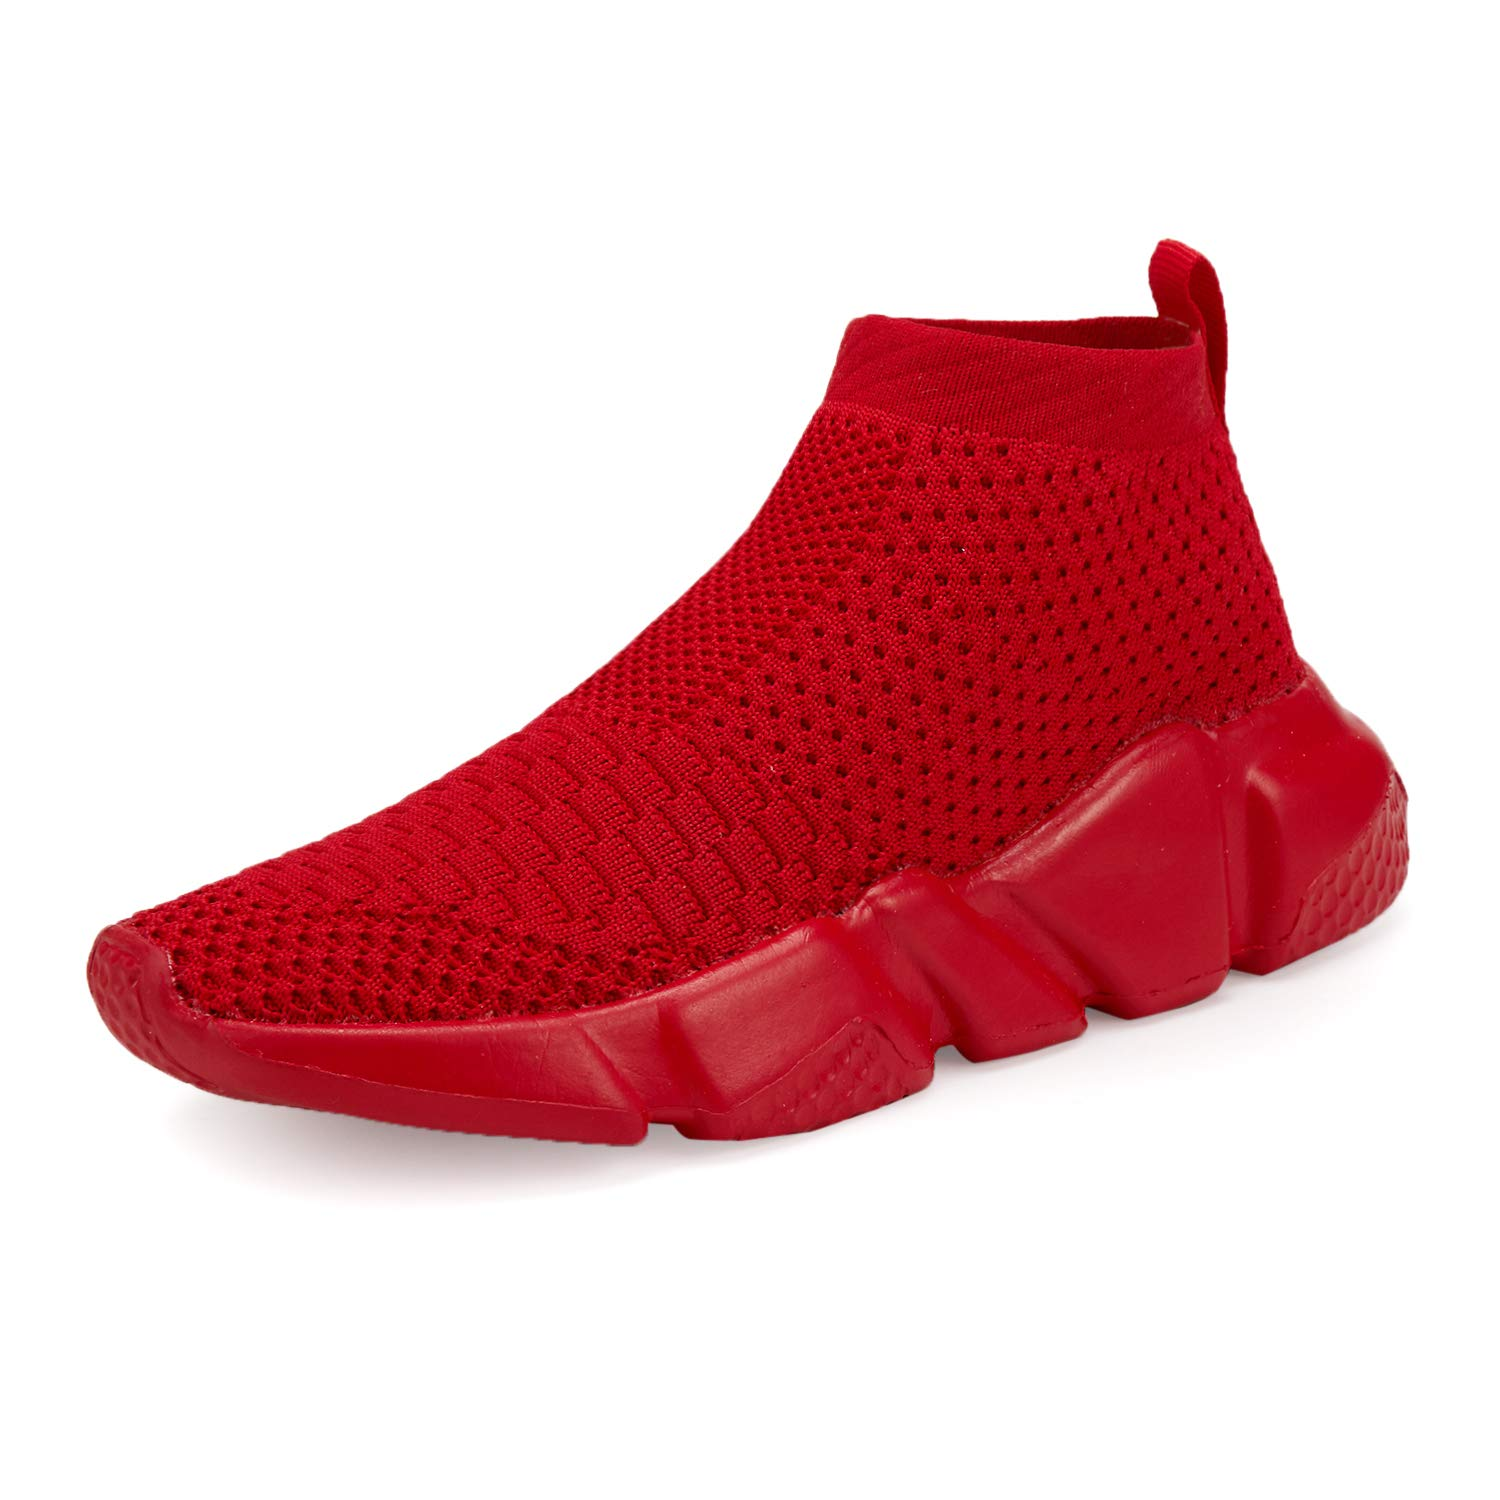 Casbeam Boys and Girls Breathable Lightweight Fashion Casual Sports Walking Shoes Running Sneakers 044 All Red 34